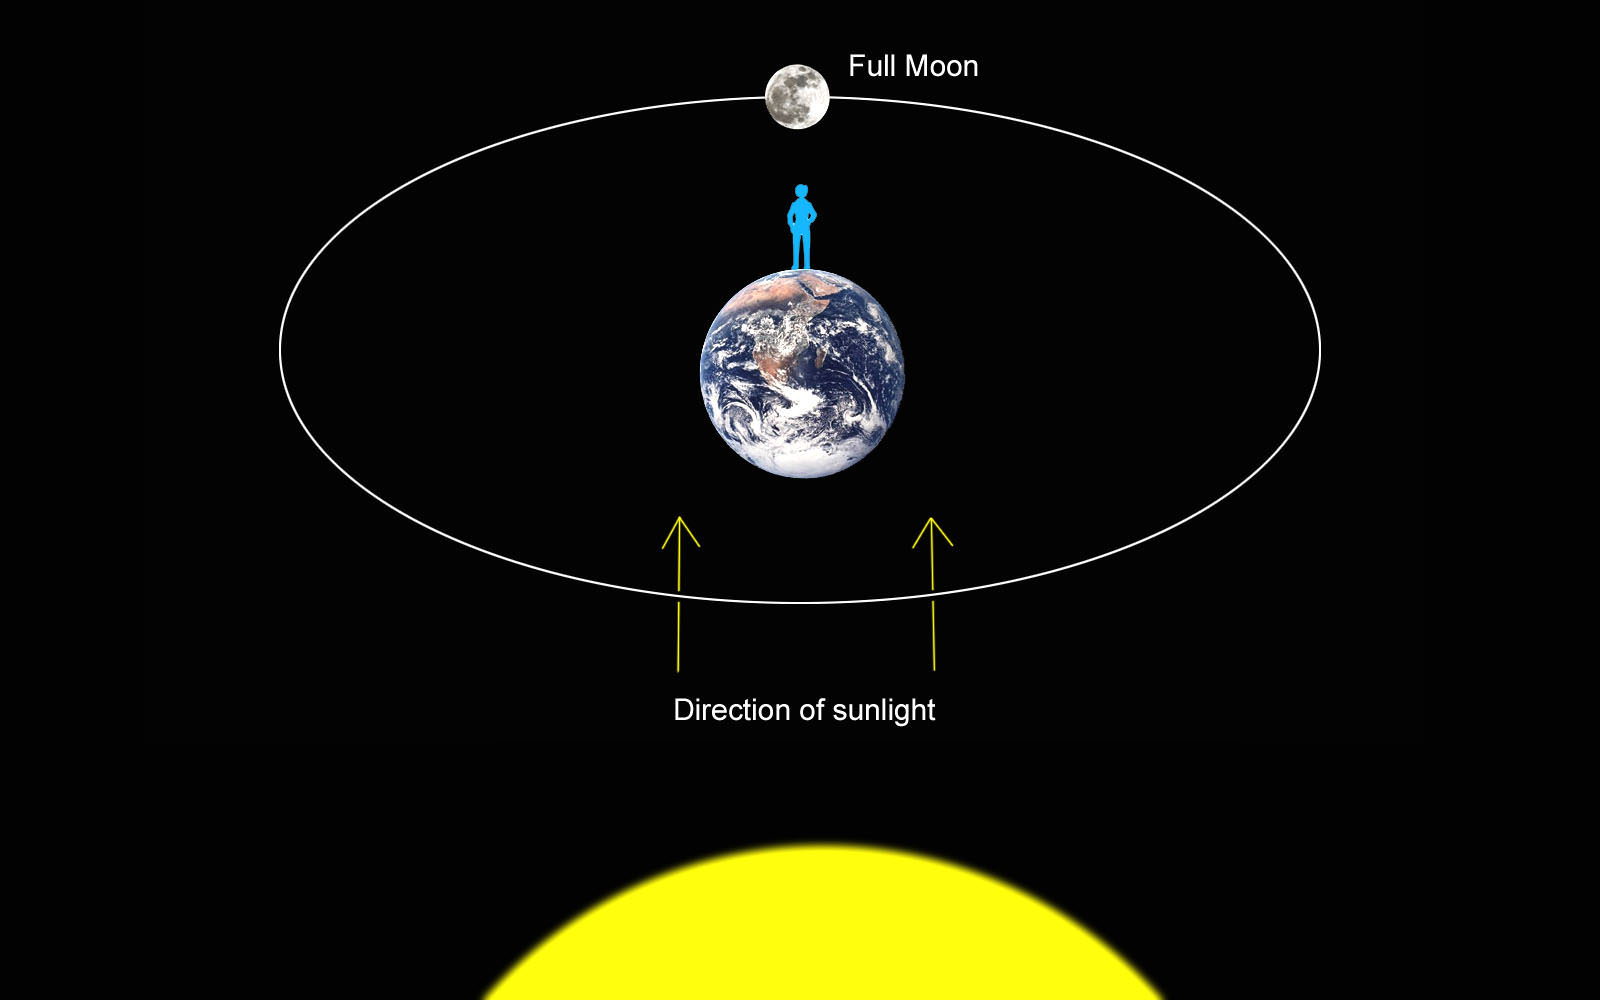 Orbit Archives Universe Today 451plutosolarsystemdiagramjpg At Full Phase The Moon Lies Directly Opposite Sun On Other Side Of